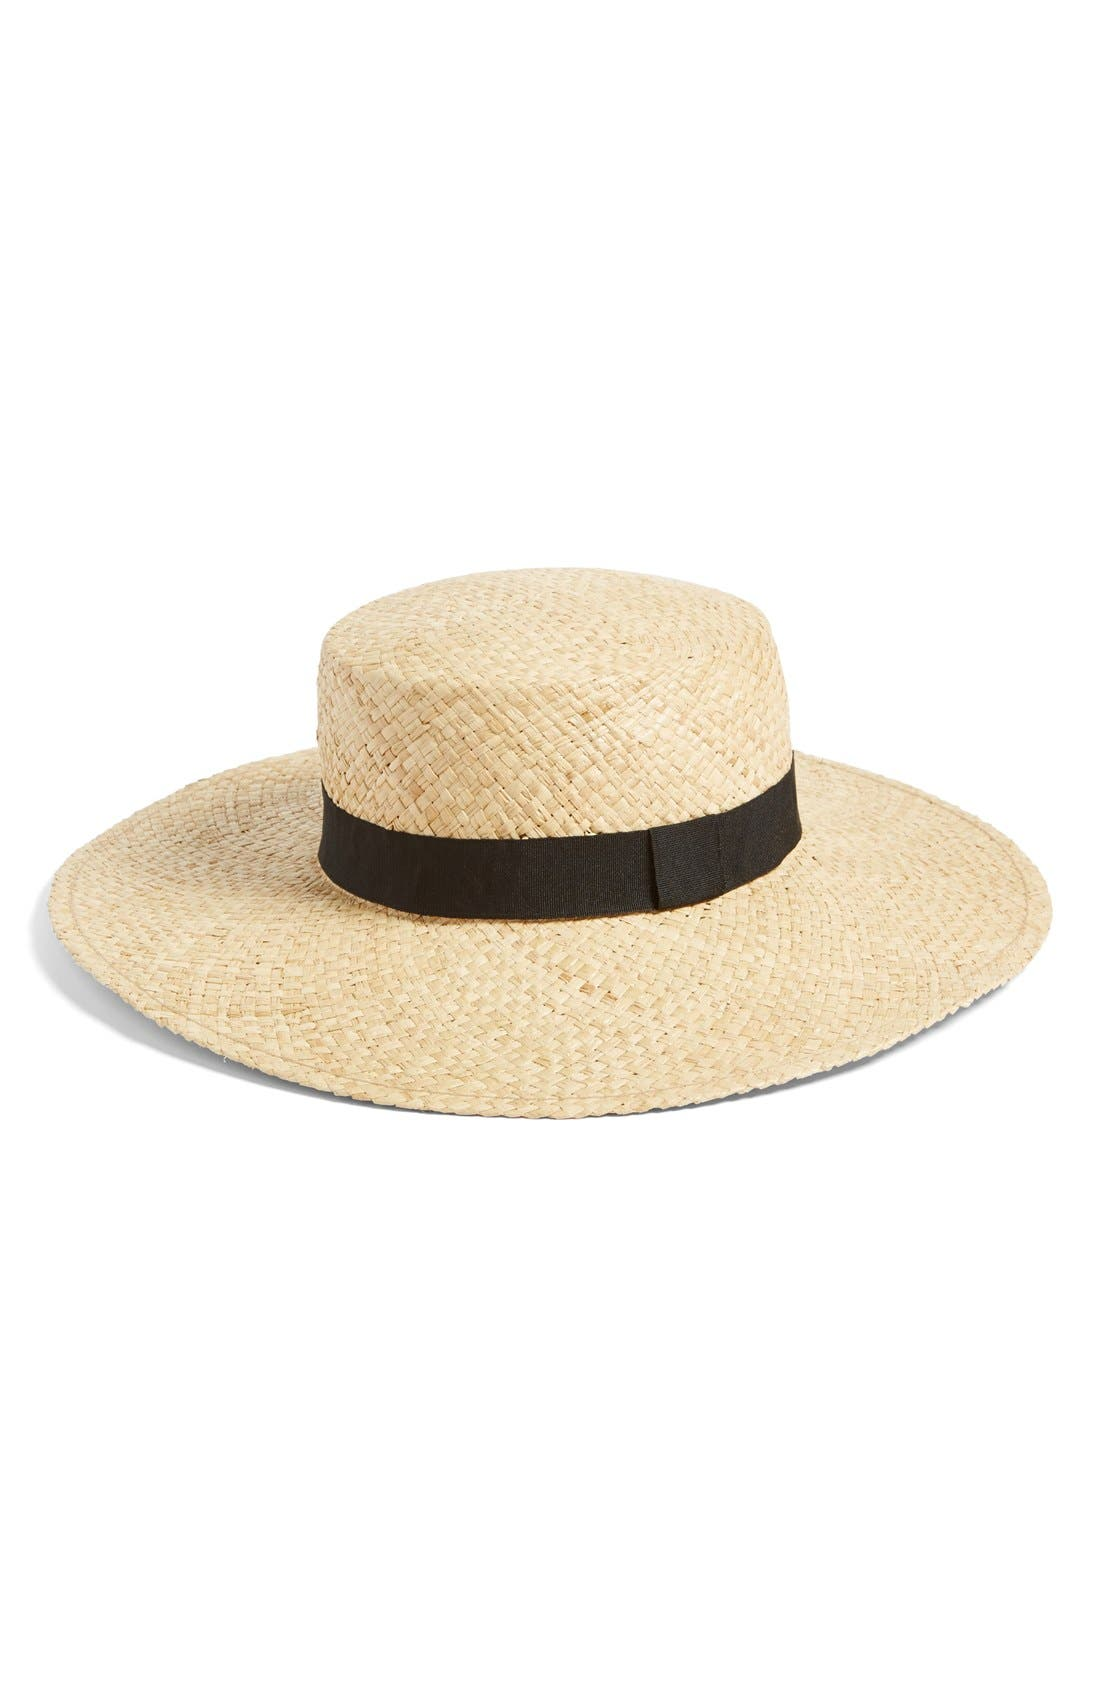 Alternate Image 1 Selected - BP Wide Brim Raffia Boater Hat